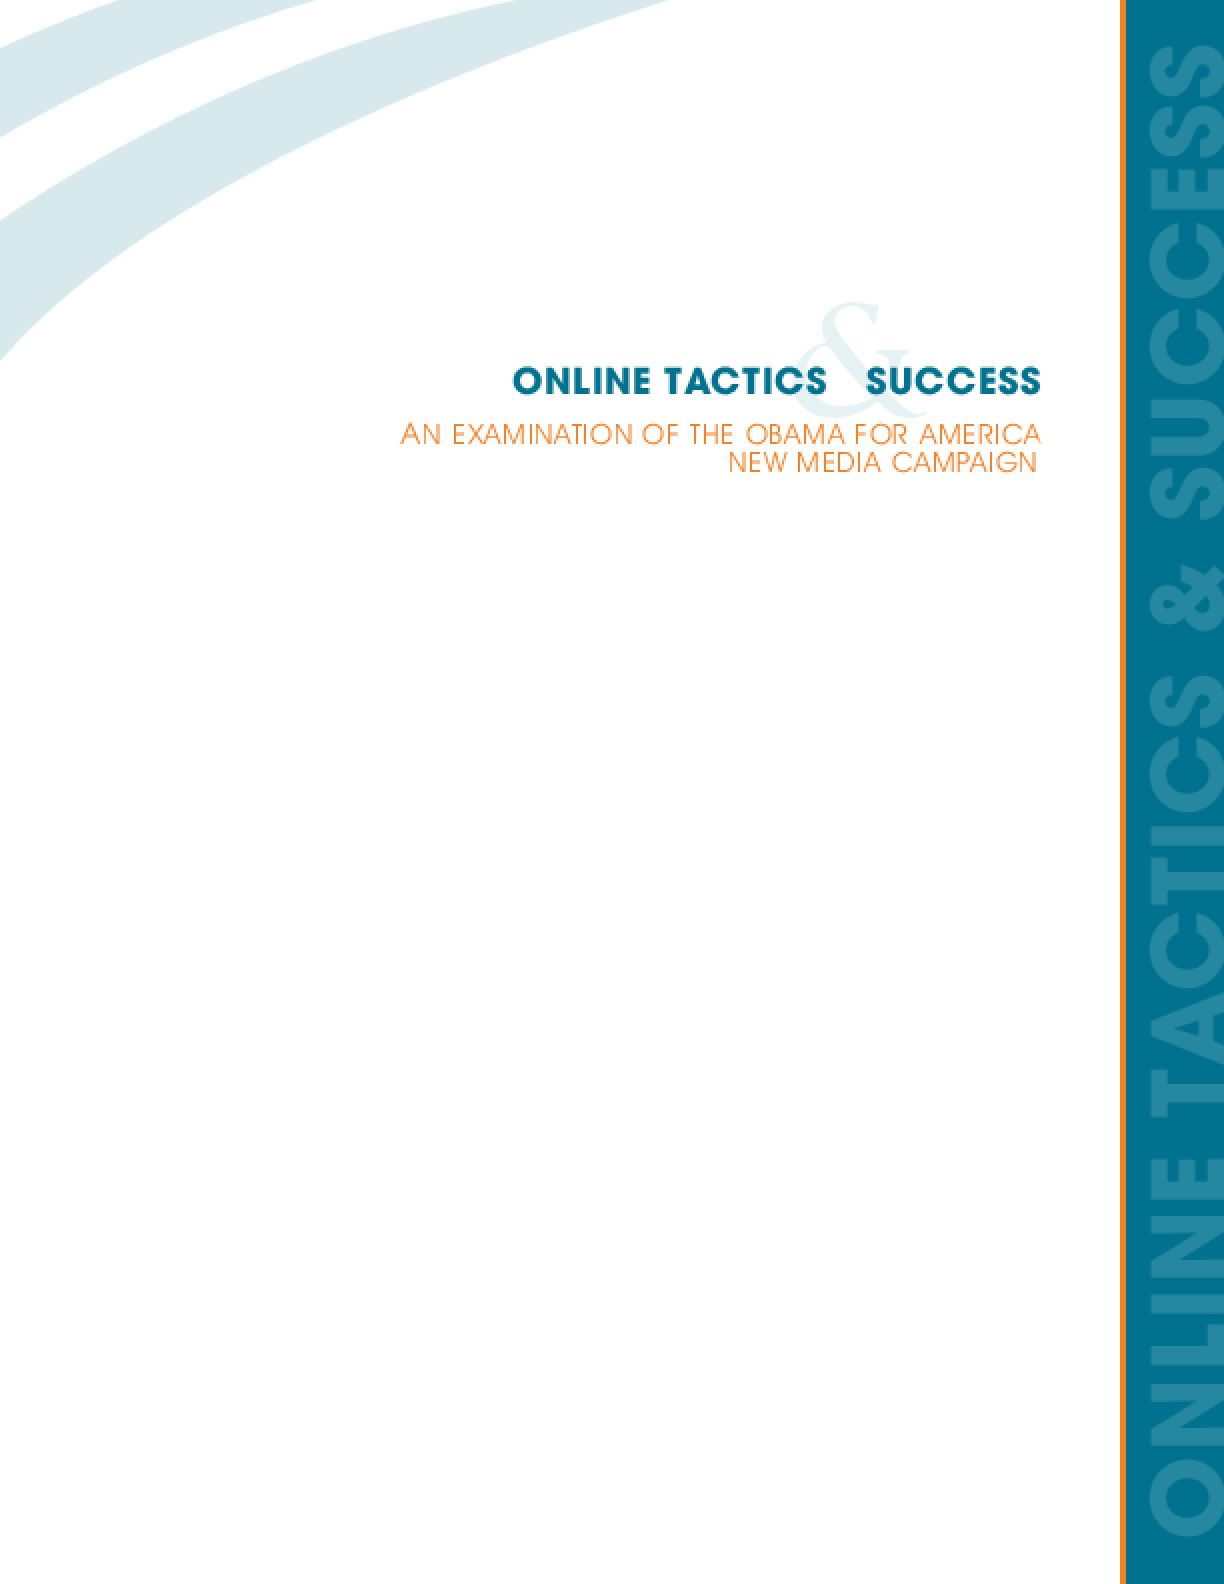 Online Tactics and Successes: An Examination of the Obama for America New Media Campaign